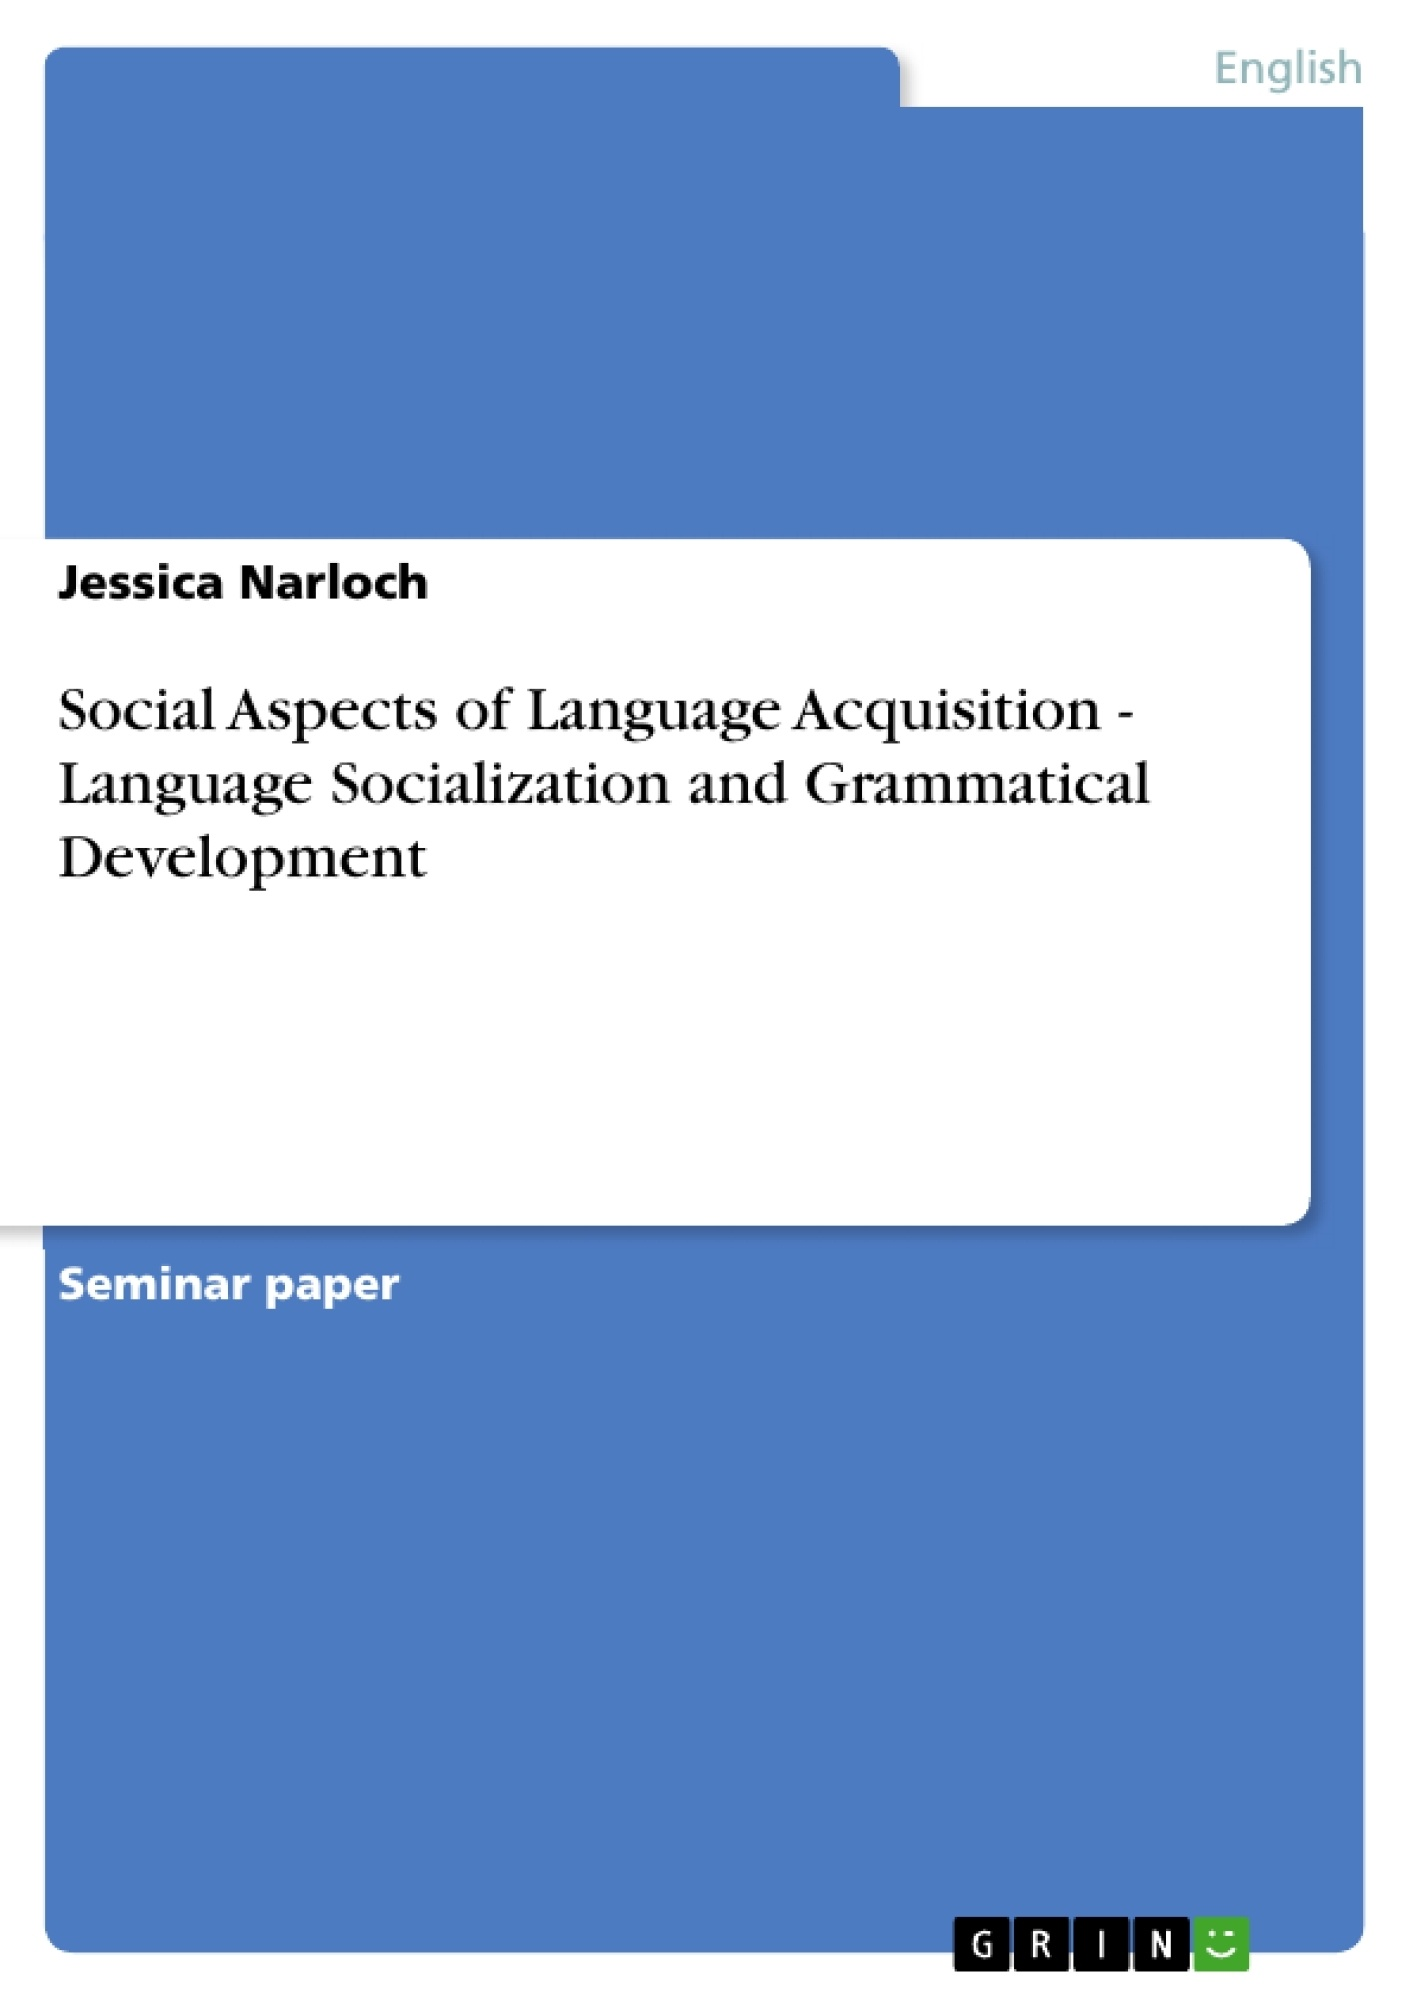 Title: Social Aspects of Language Acquisition - Language Socialization and Grammatical Development